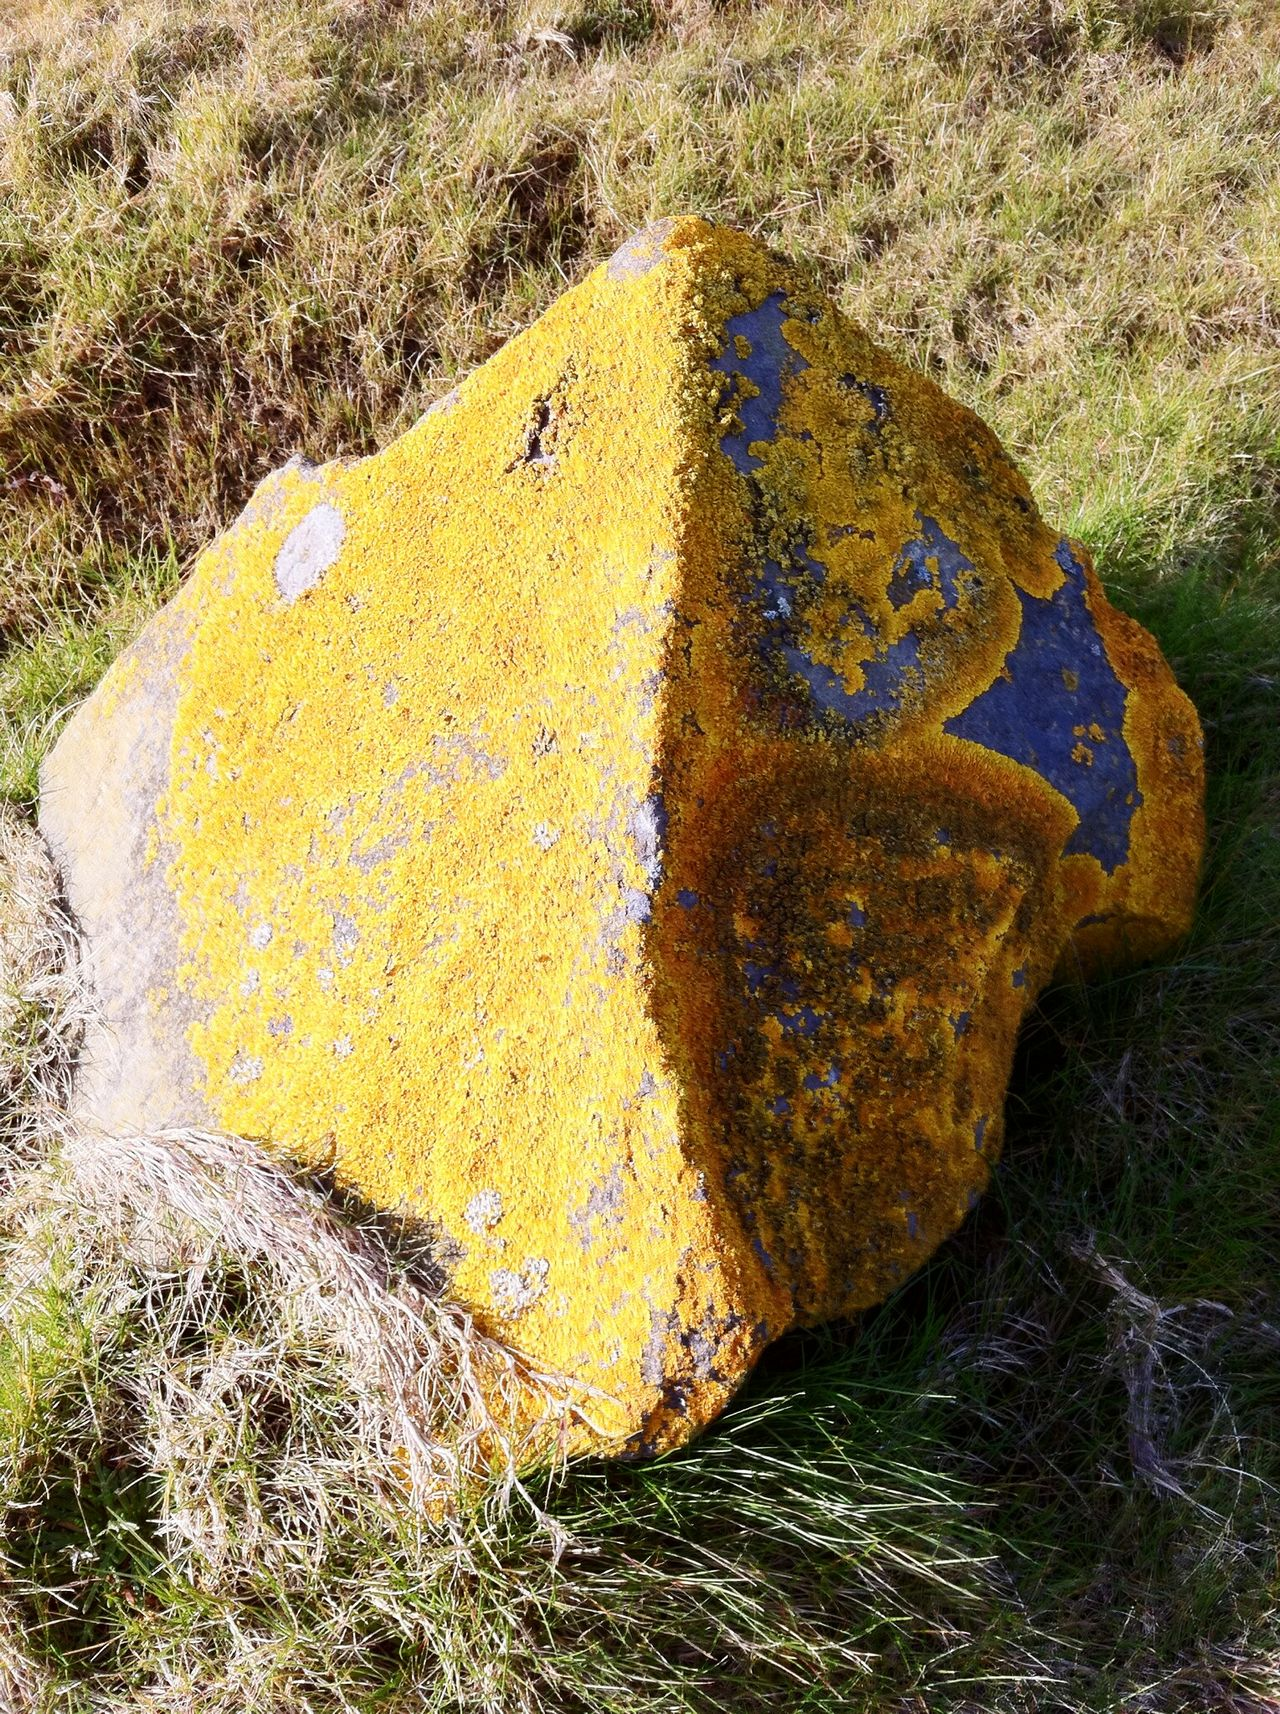 Stonecrust Yellow High Angle View Close-up Textured  No People Outdoors Day Oil Spill Lichen Lichen On A Rock Yellow Lichen Rock - Object Rock Lichen Beauty Lichens On A Rock Lichenlove Lichen Rock Lichen Growth